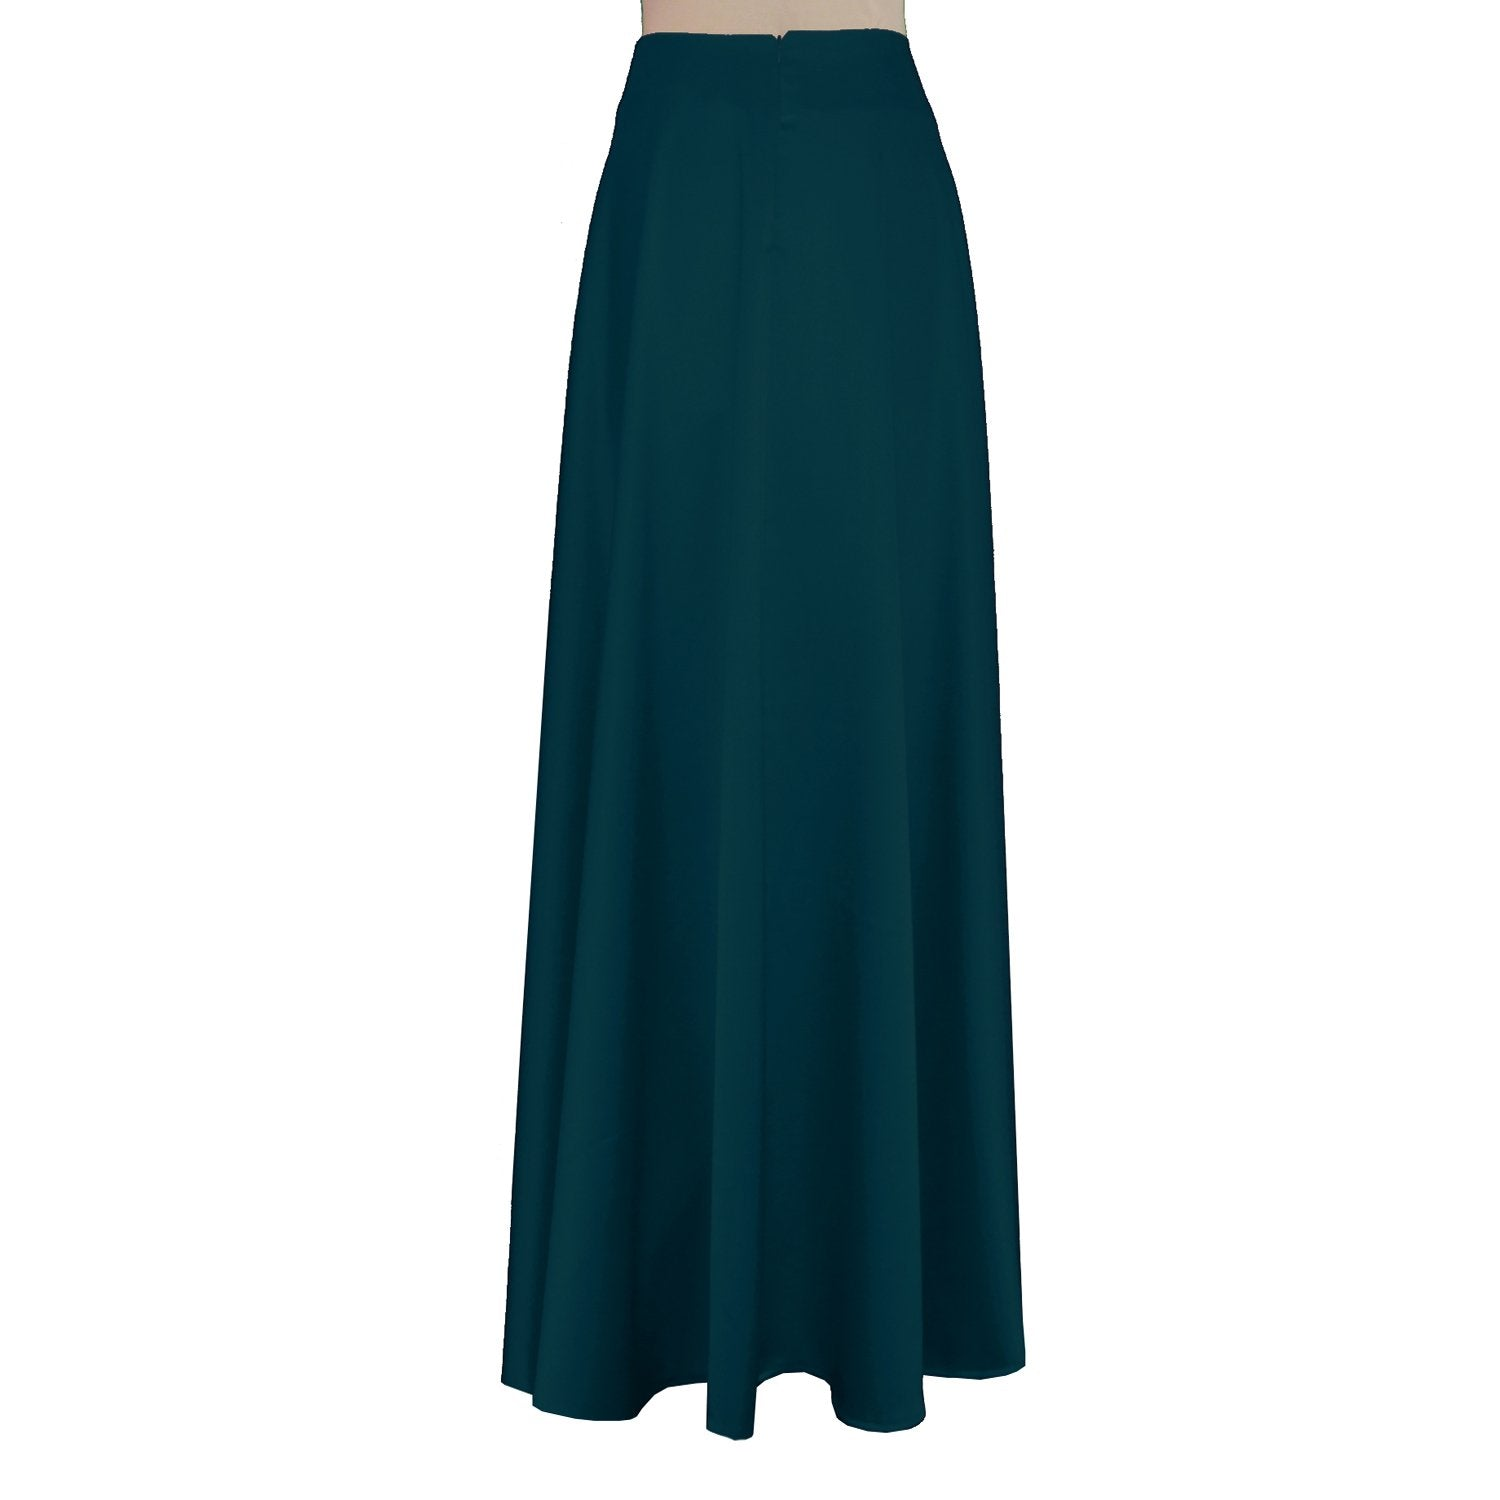 Maxi formal skirt Royal blue bridesmaid wedding long skirt Duchess floor length skirt